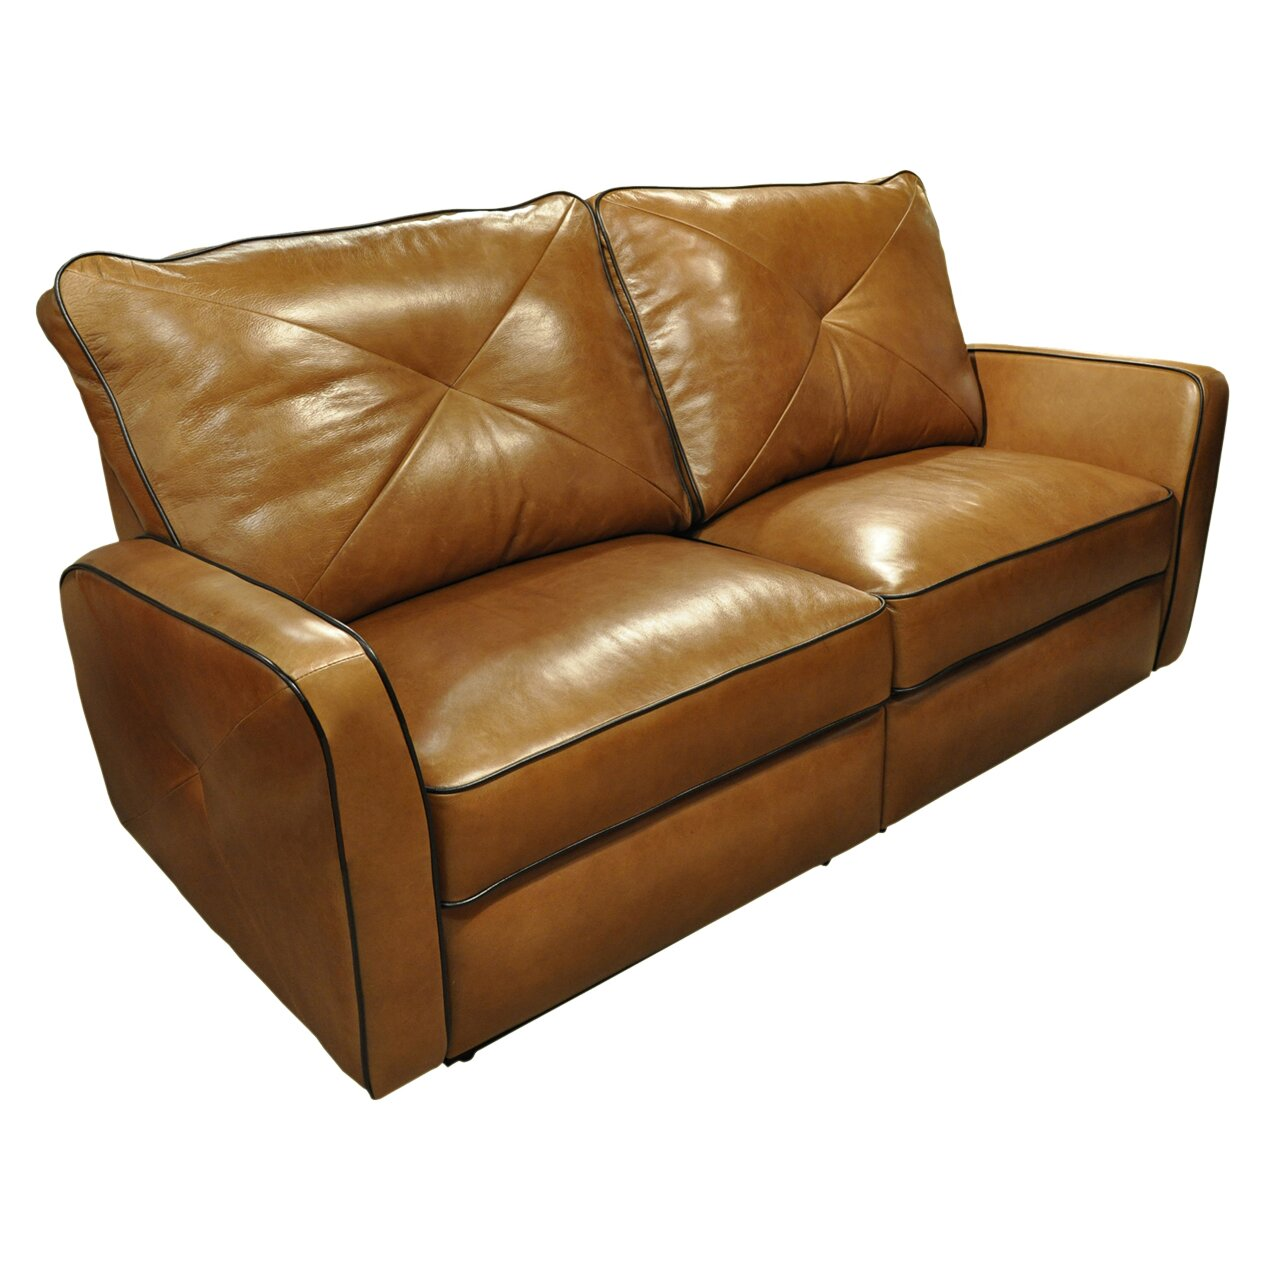 Omnia leather bahama leather reclining loveseat reviews wayfair Leather reclining sofa loveseat